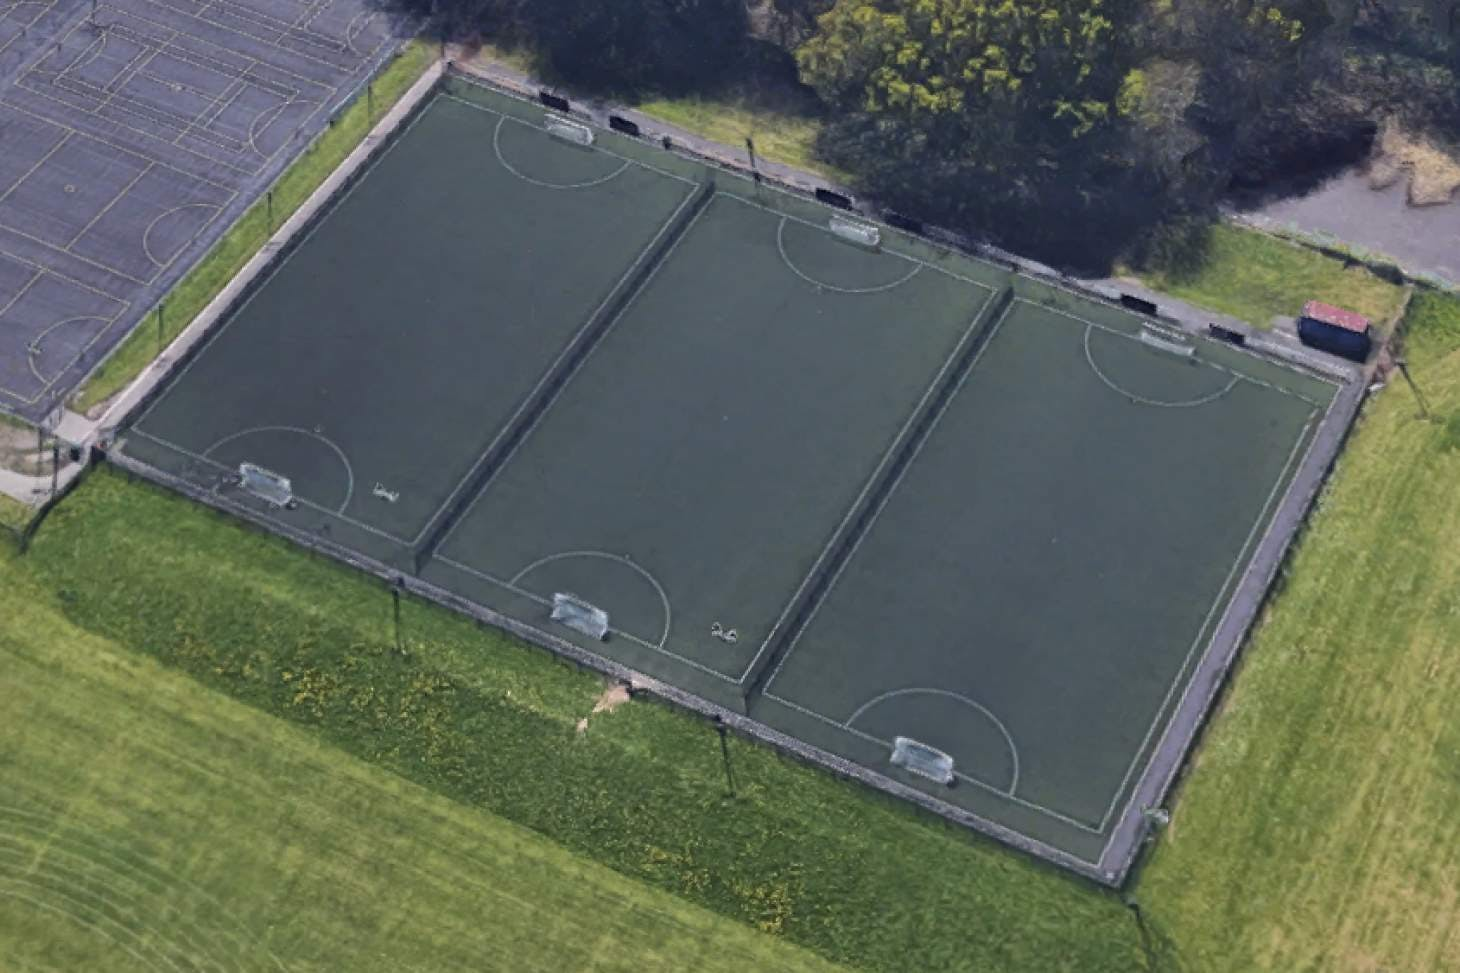 PlayFootball Bournemouth Sir David English 6 a side | 3G Astroturf football pitch